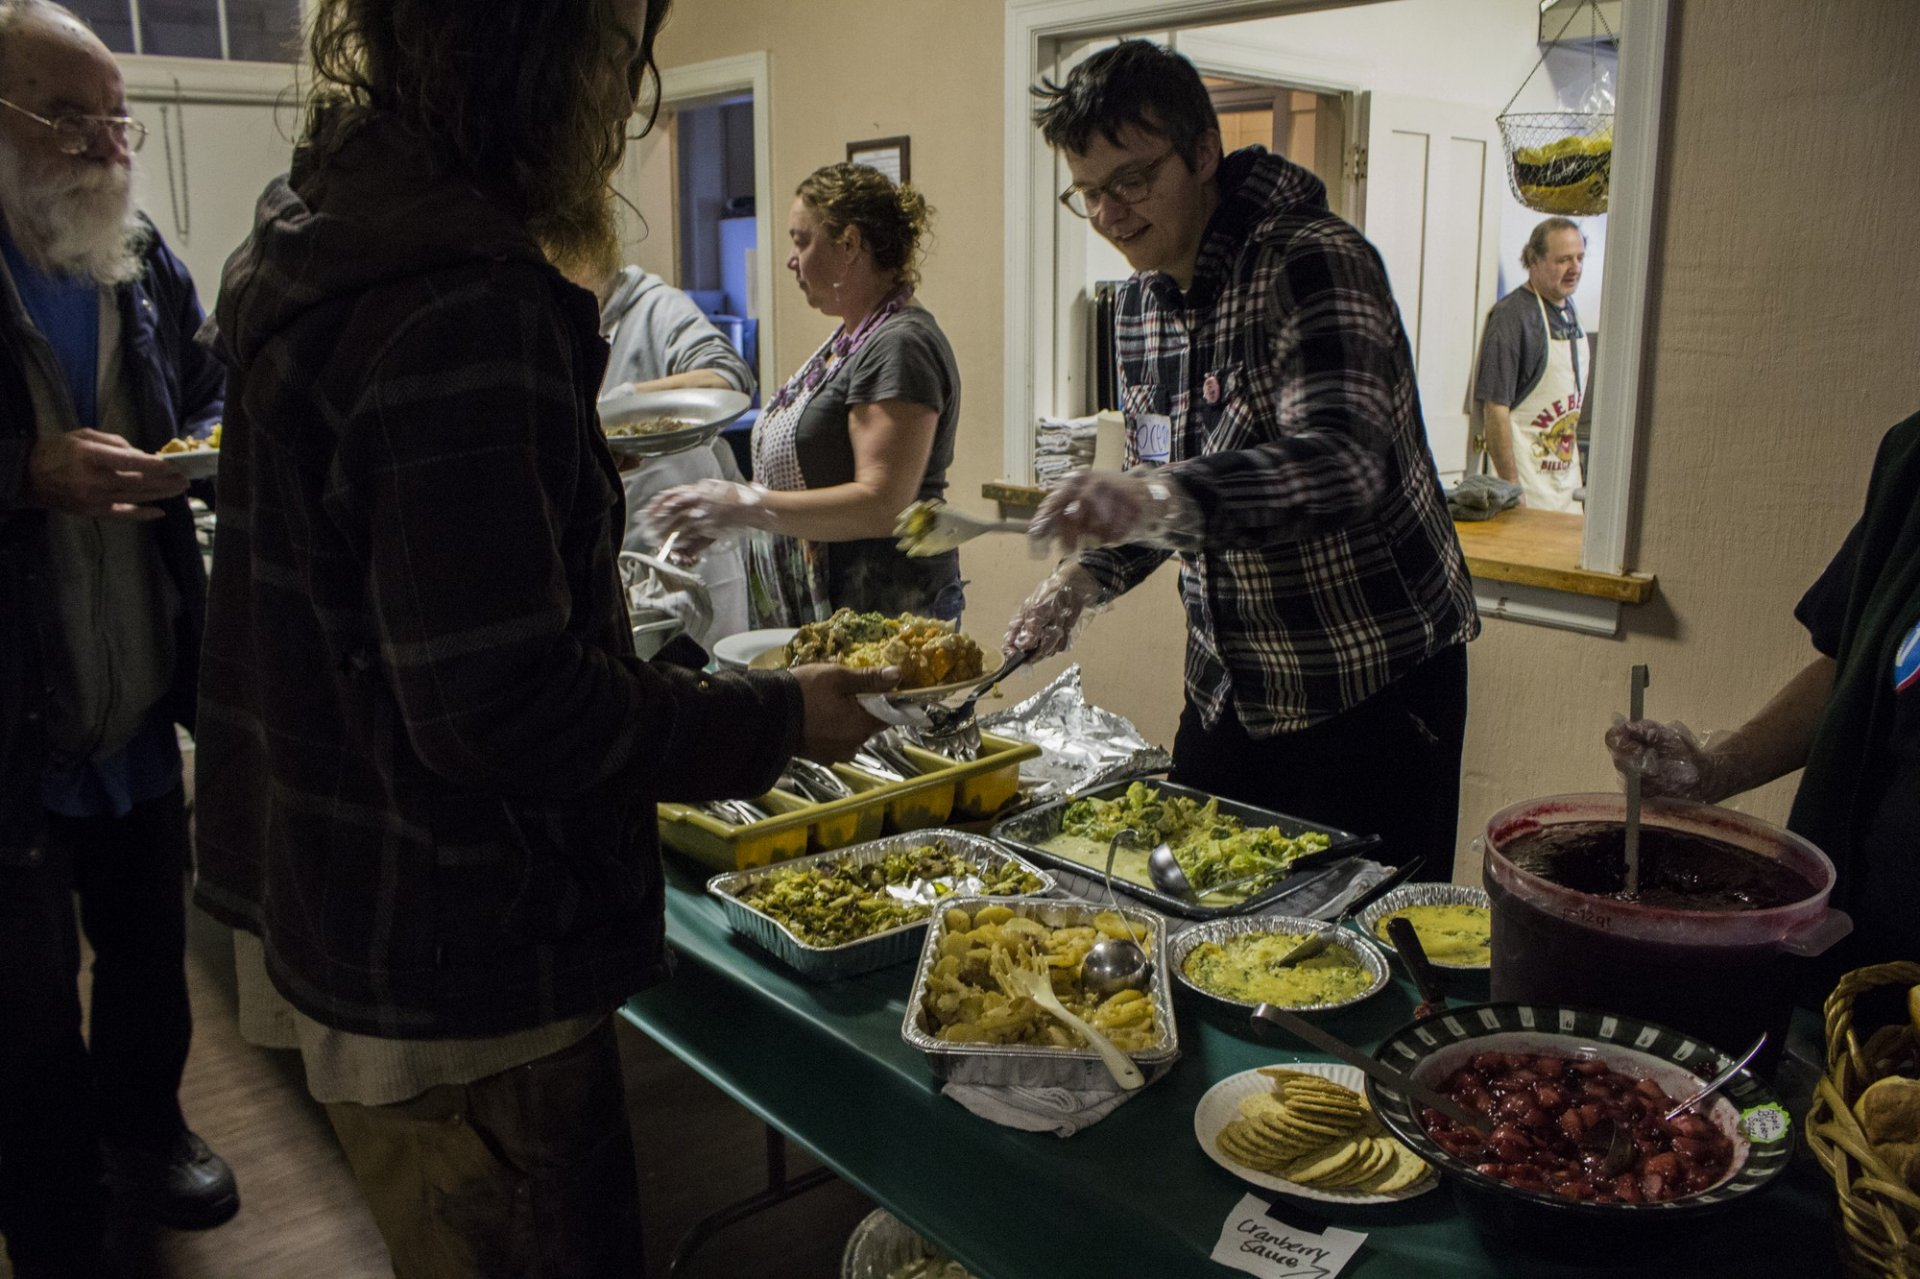 Volunteers serving free food to community memebrs for the 4th annual Harvest Feast held at The Veteran's Hall on Thanksgiving.|  Photo by Tony Wallin